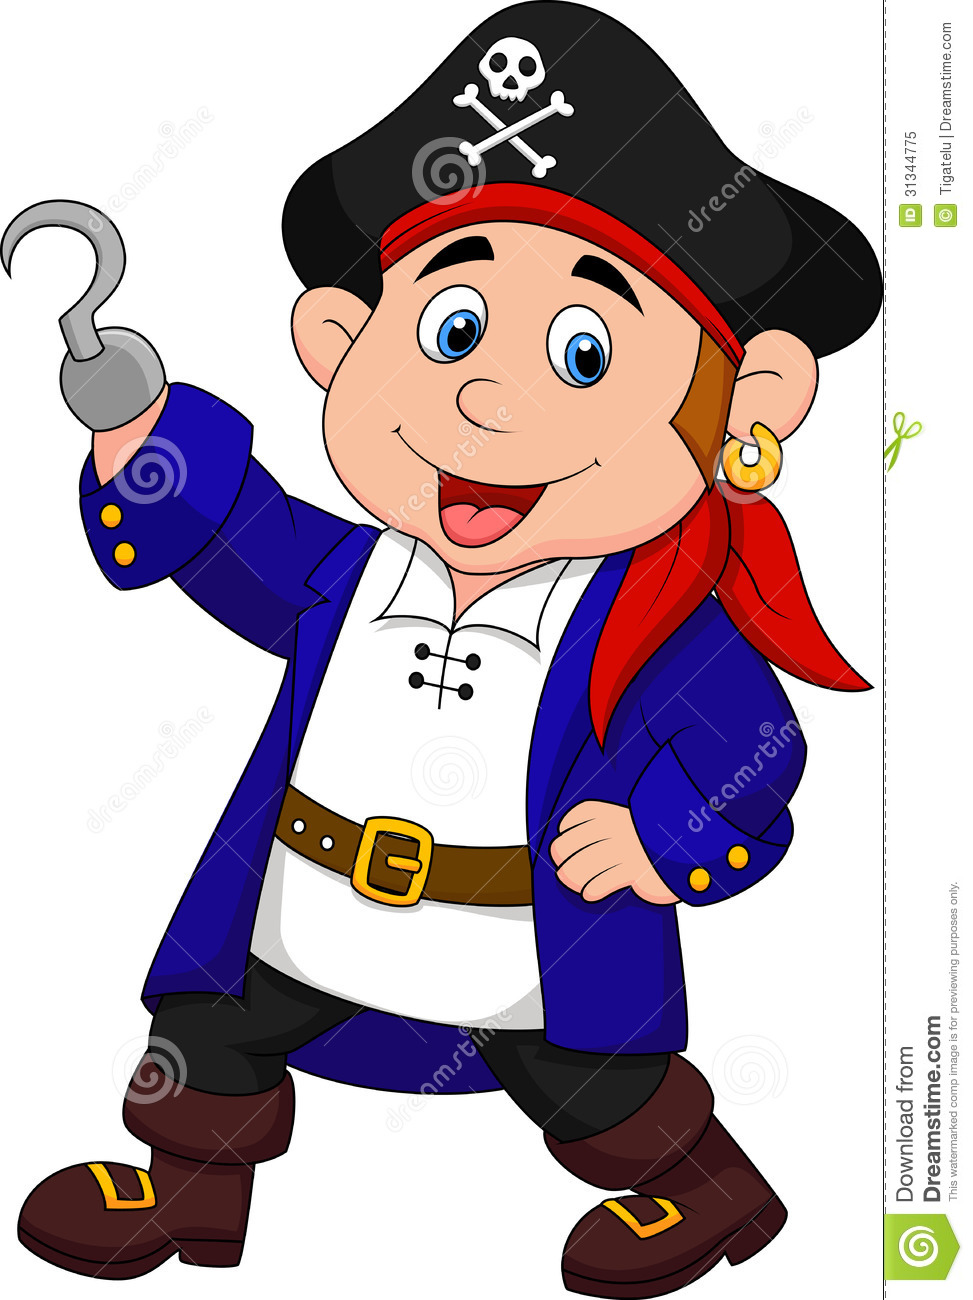 Cute pirate kid cartoon stock vector. Image of isolated ...